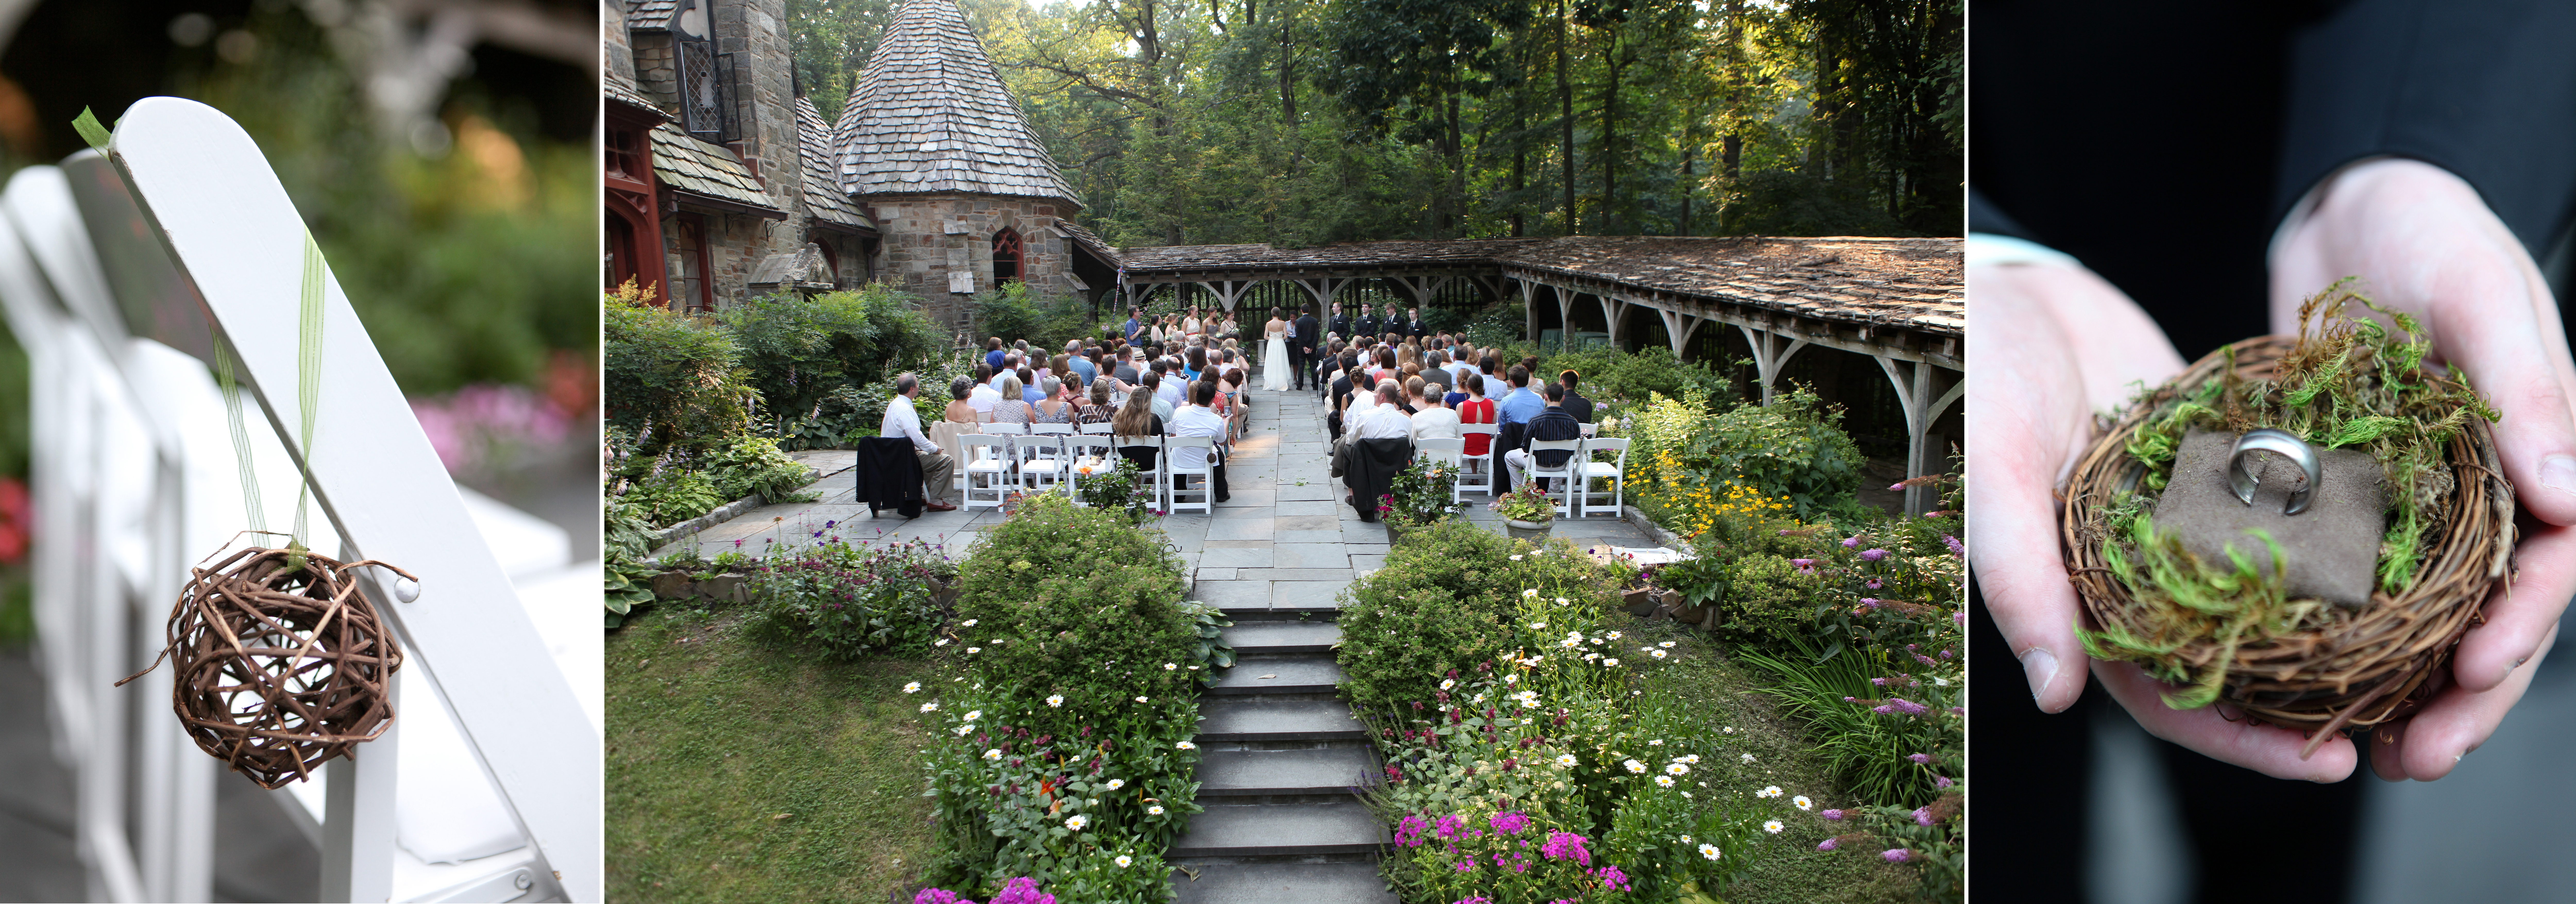 The Ultimate Eco Friendly Wedding Rustic Upcycled And Natural